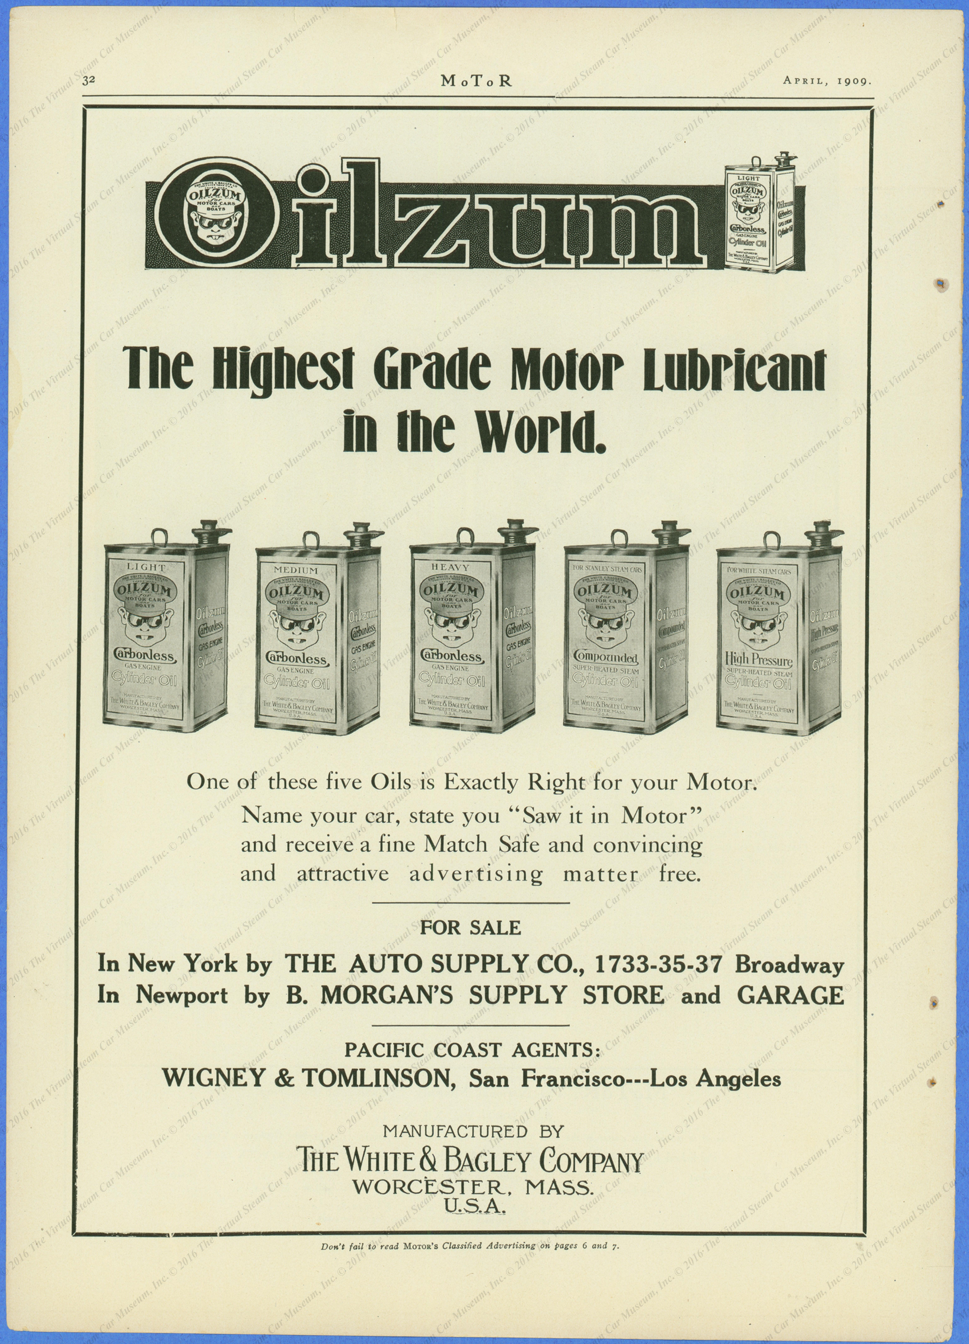 This Oilzum advertisement appeared in Motor Magazine for April 1909.  Page 32.